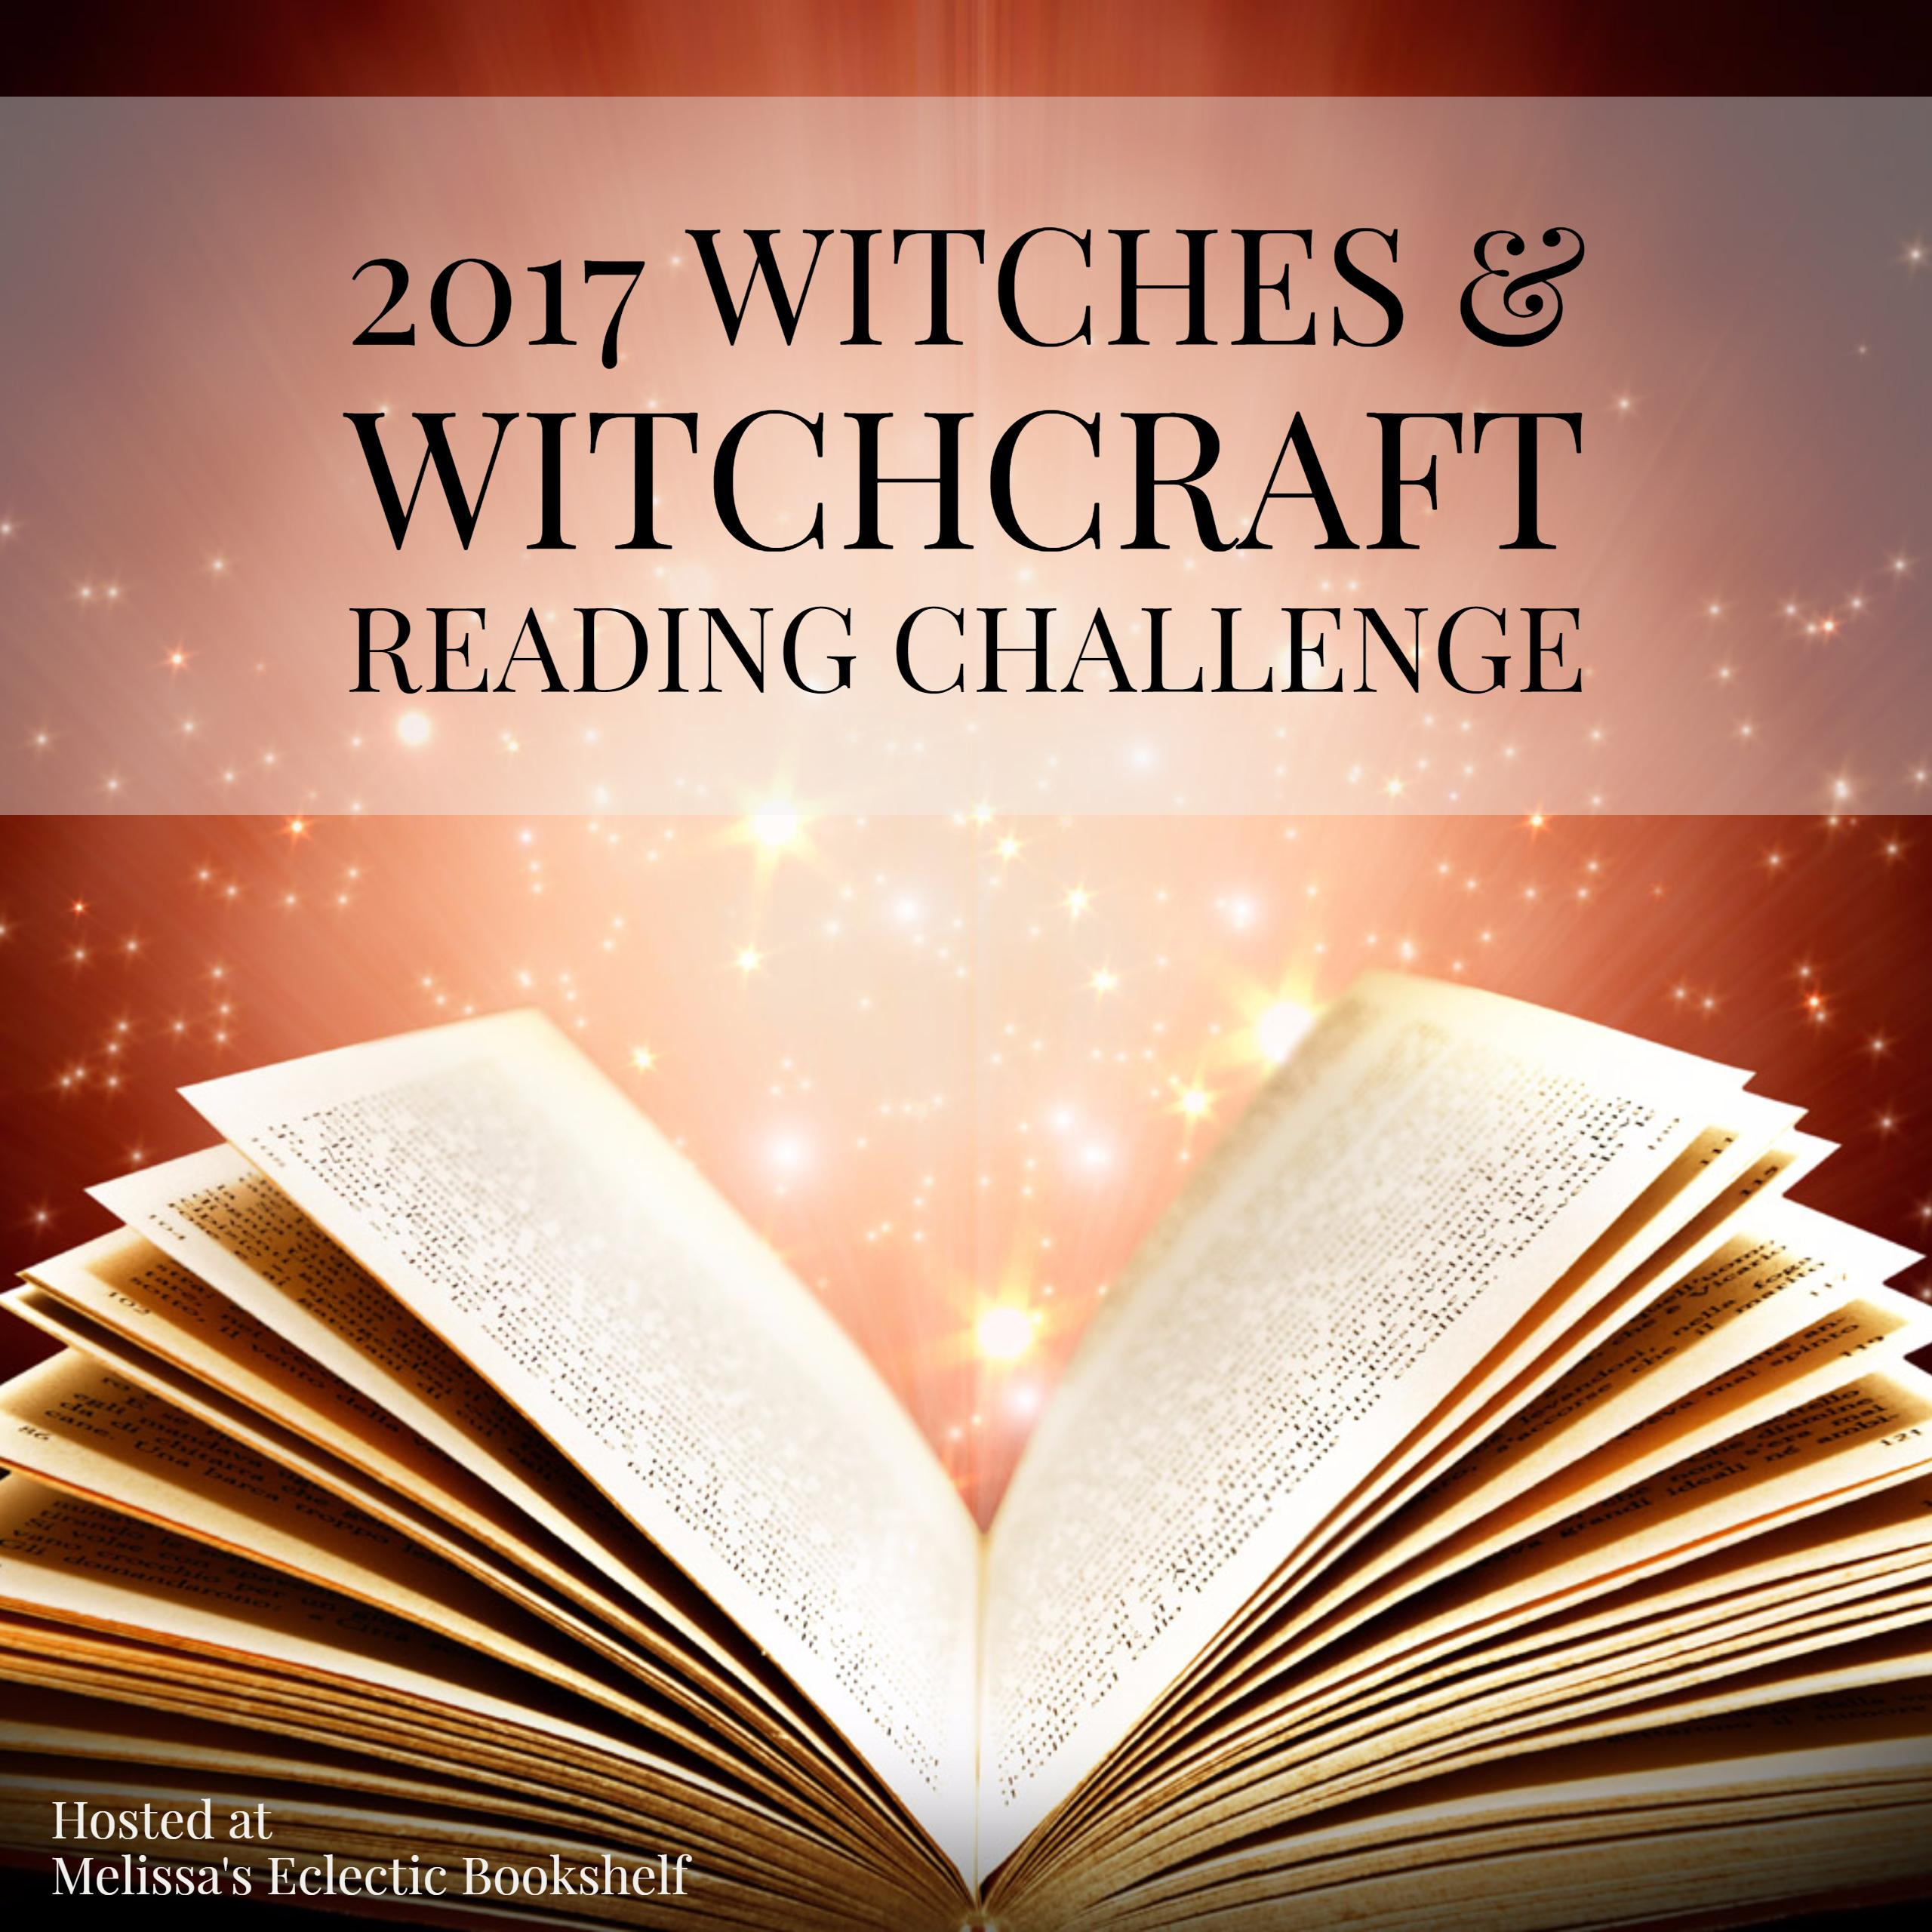 Witches and witchcraft Reading Challenge